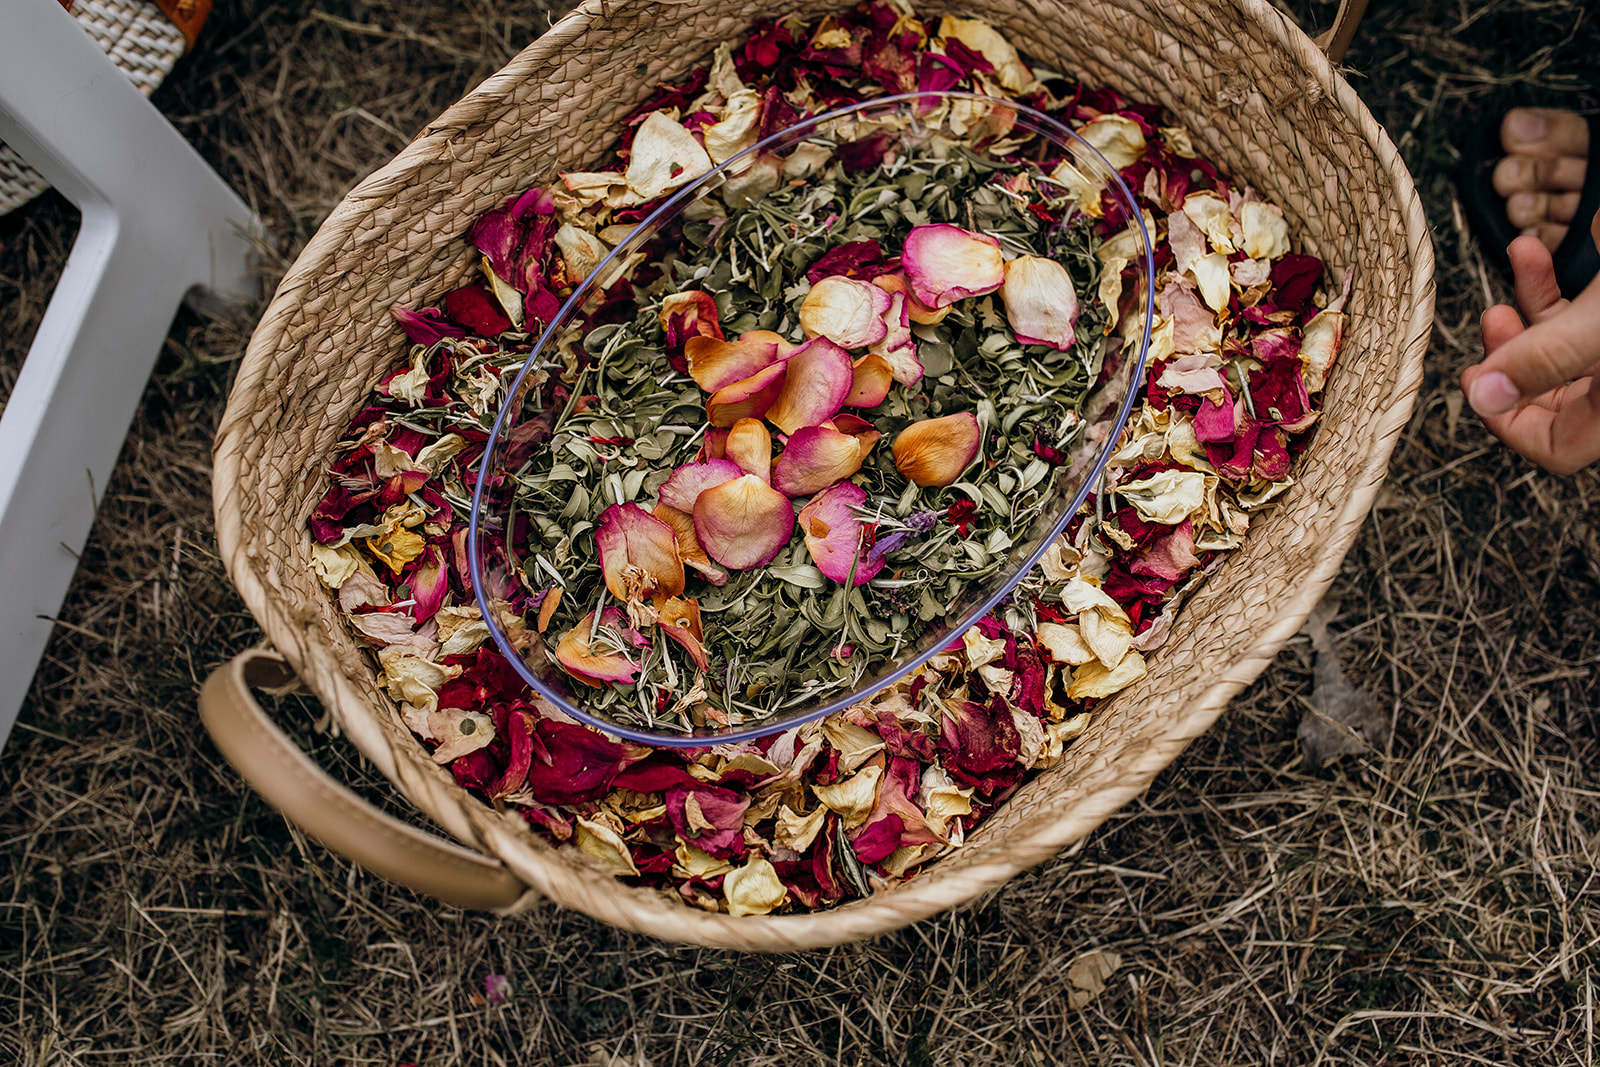 A cane basket sits on the ground full of sustainably dried rose petals and hole punched leaves ready to be thrown as wedding confetti.